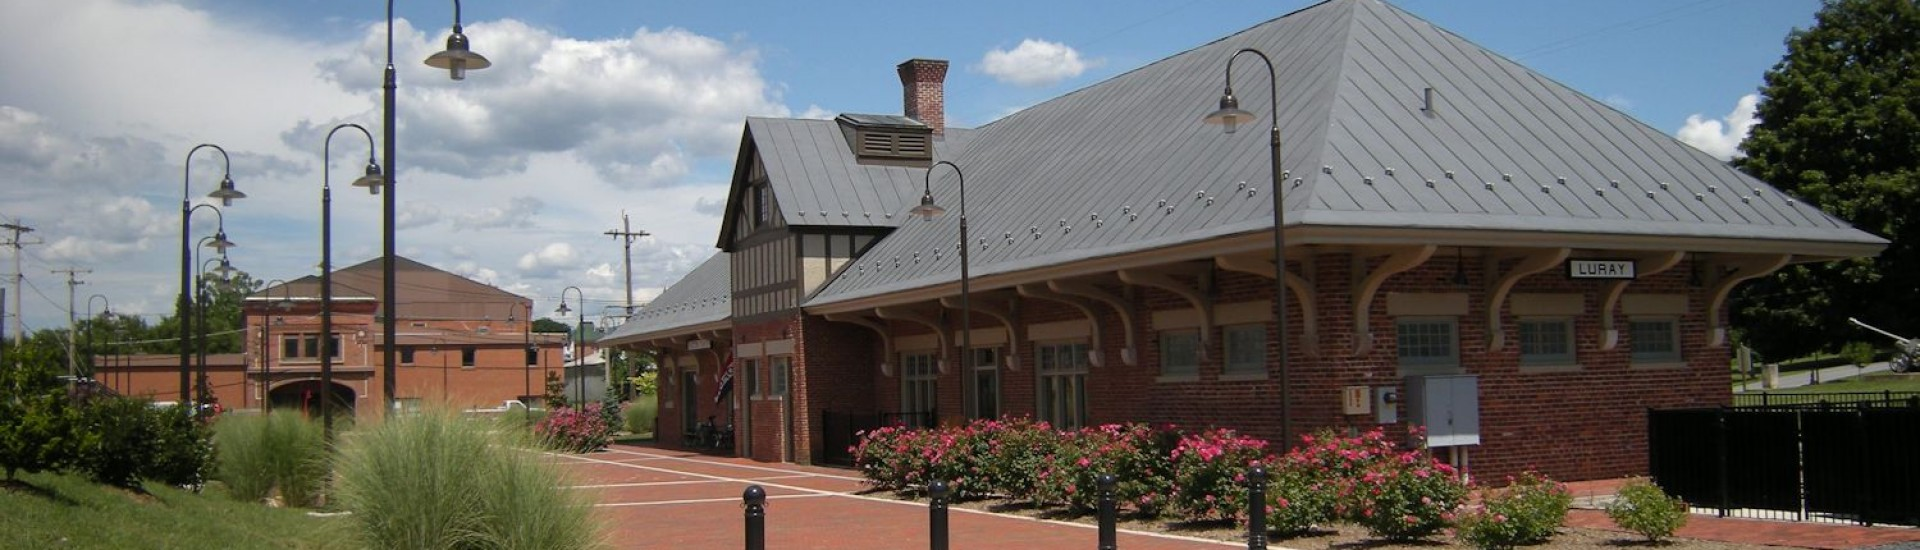 Luray Train Station today, Luray Visitor Center, Page County Chamber of Commerce.